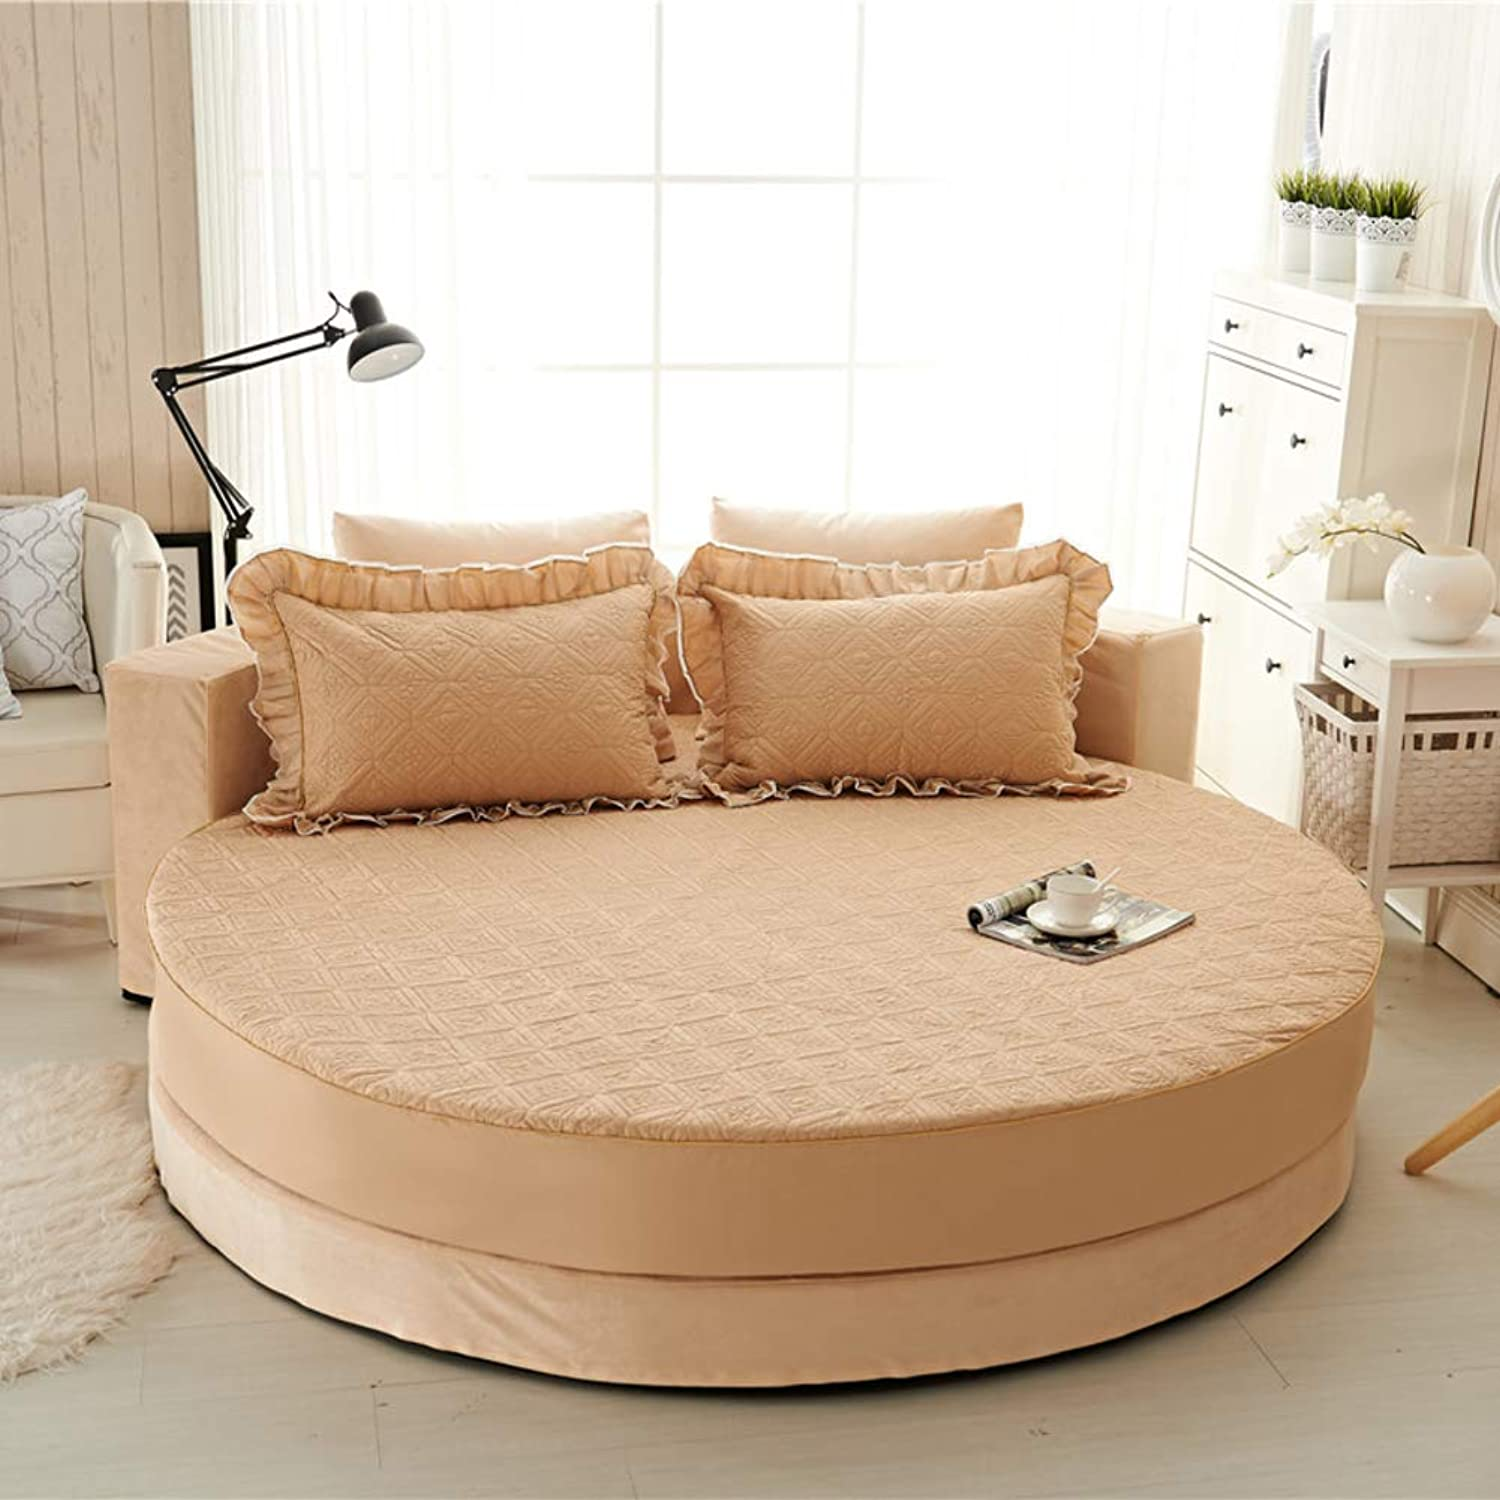 Cotton Round Bed Fitted Sheets,Quilted Thick Round Bed Cover Non-Slip Mattress Cover Extra Soft and Comfortable Bedspread Hypoallergenic-V diameter230cm(91inch) Version A